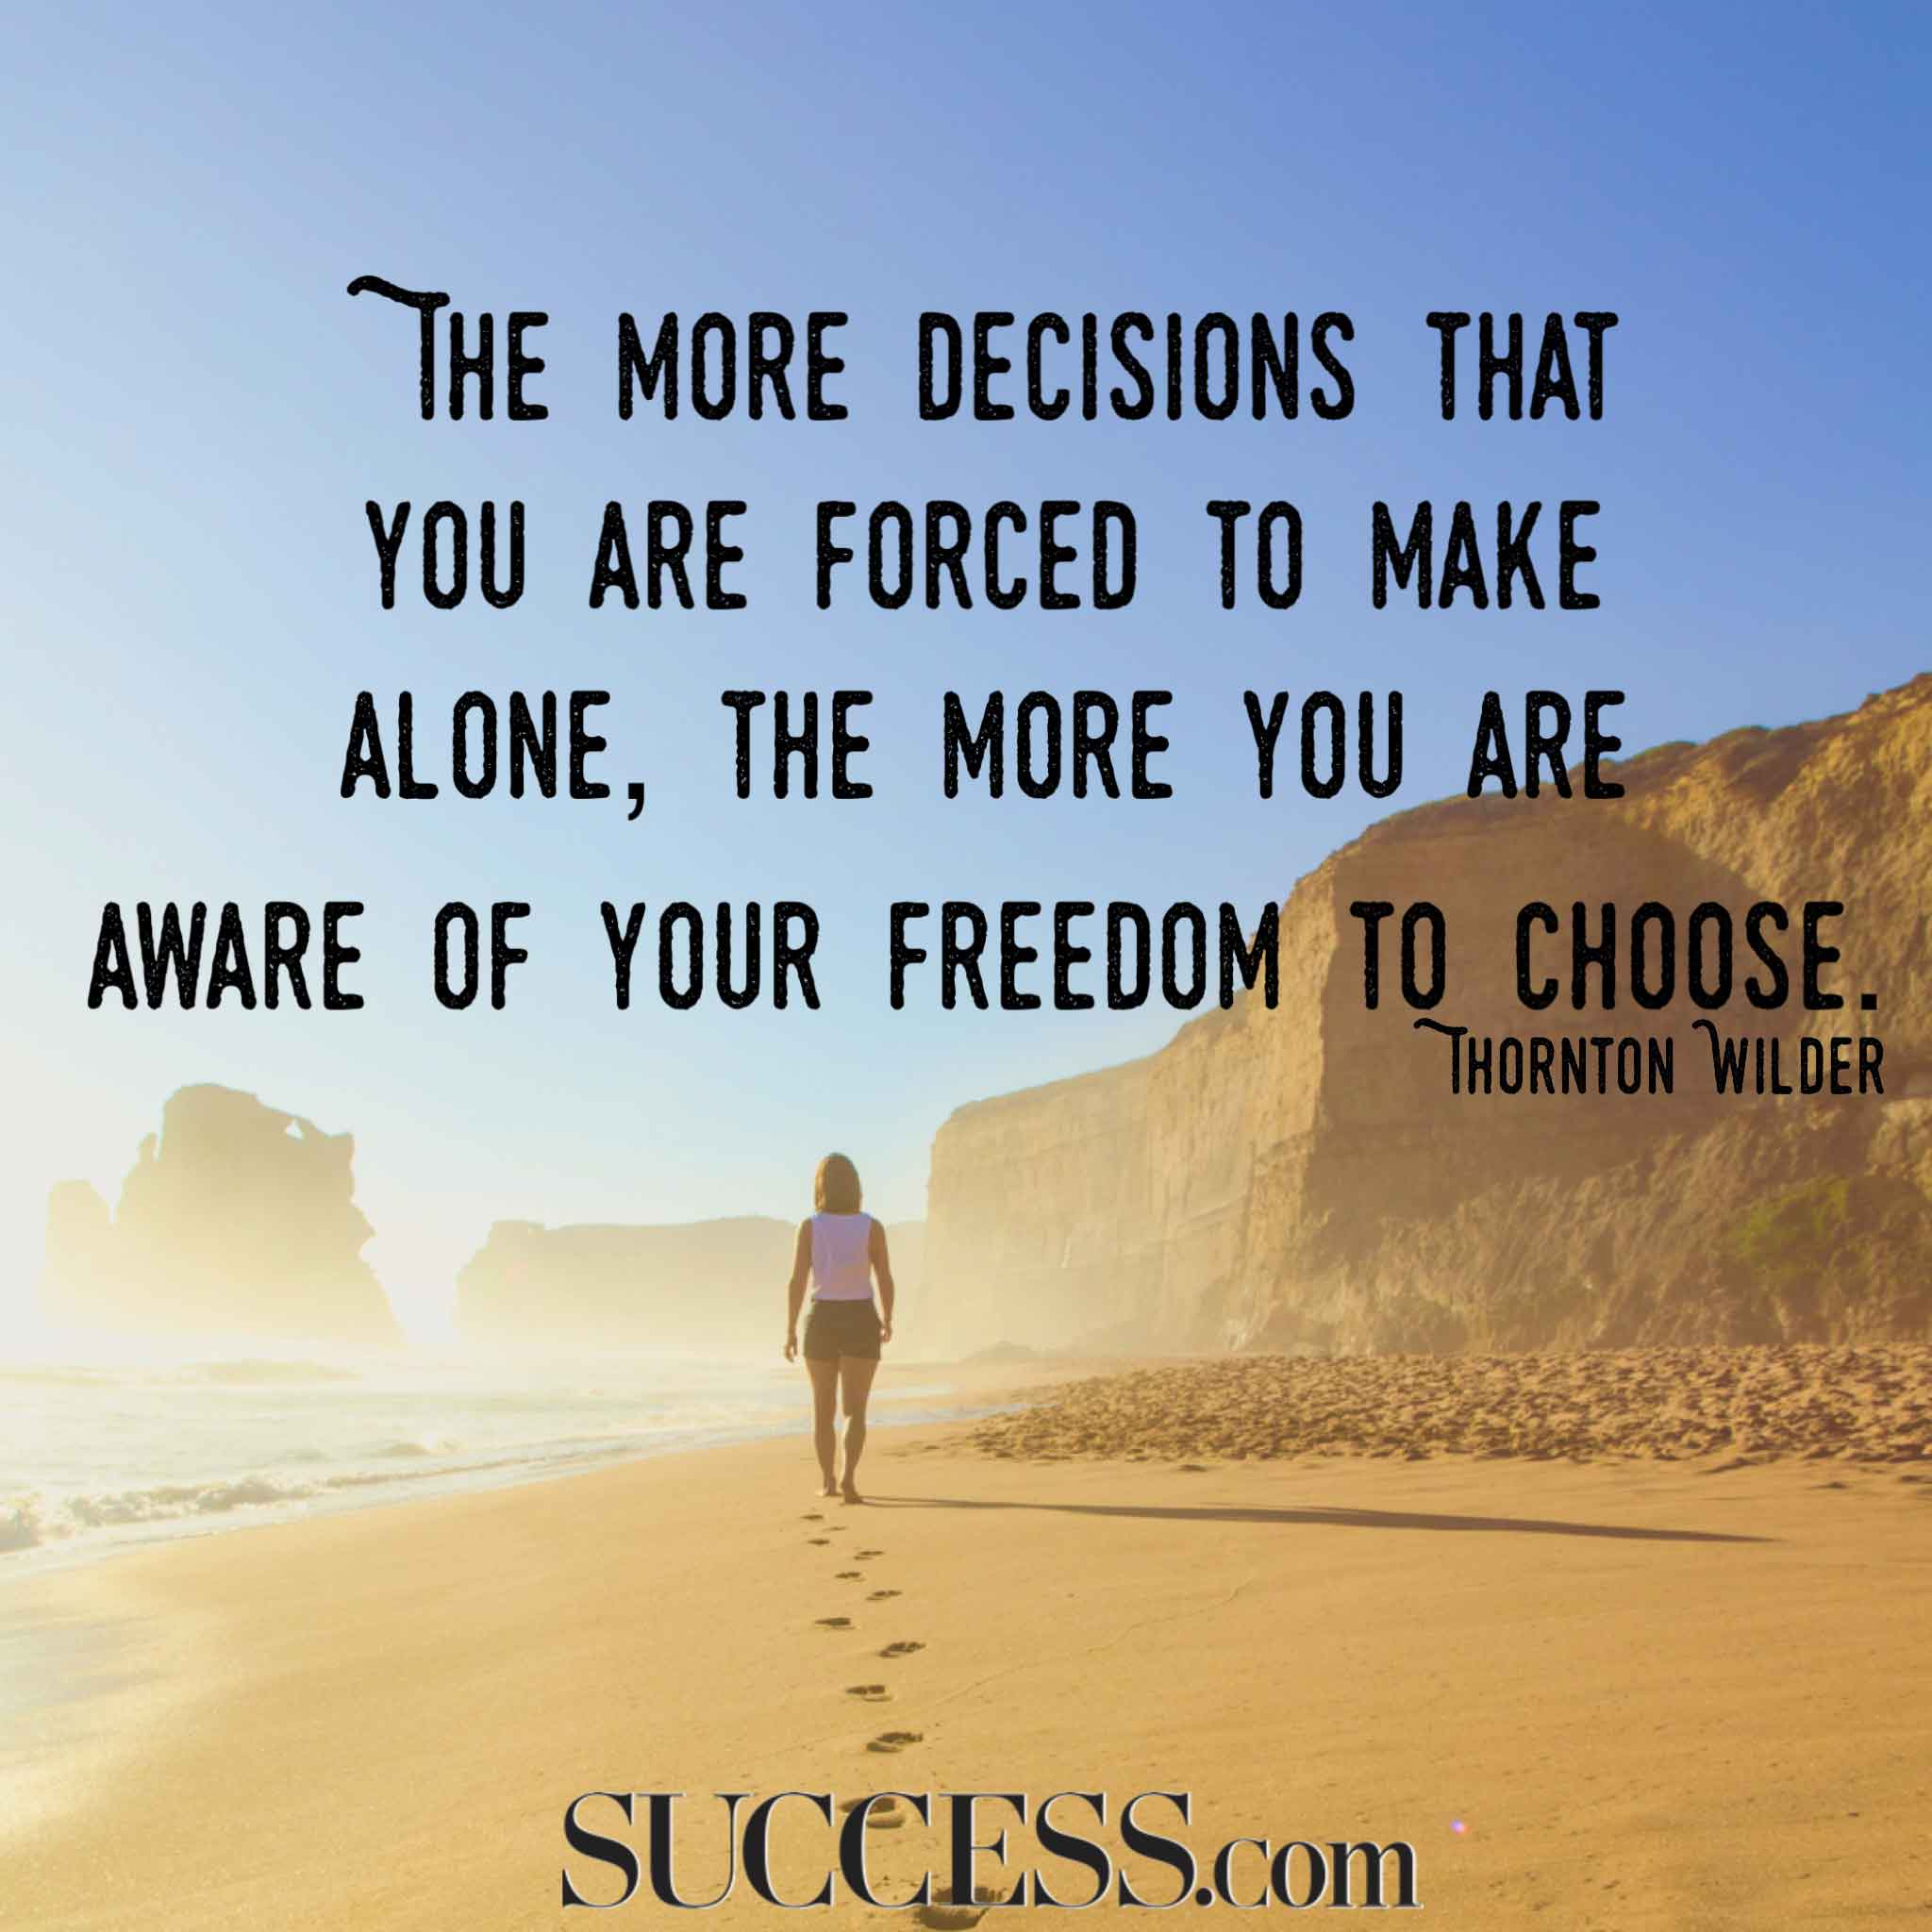 Life Without Freedom Quotes: 13 Quotes About Making Life Choices